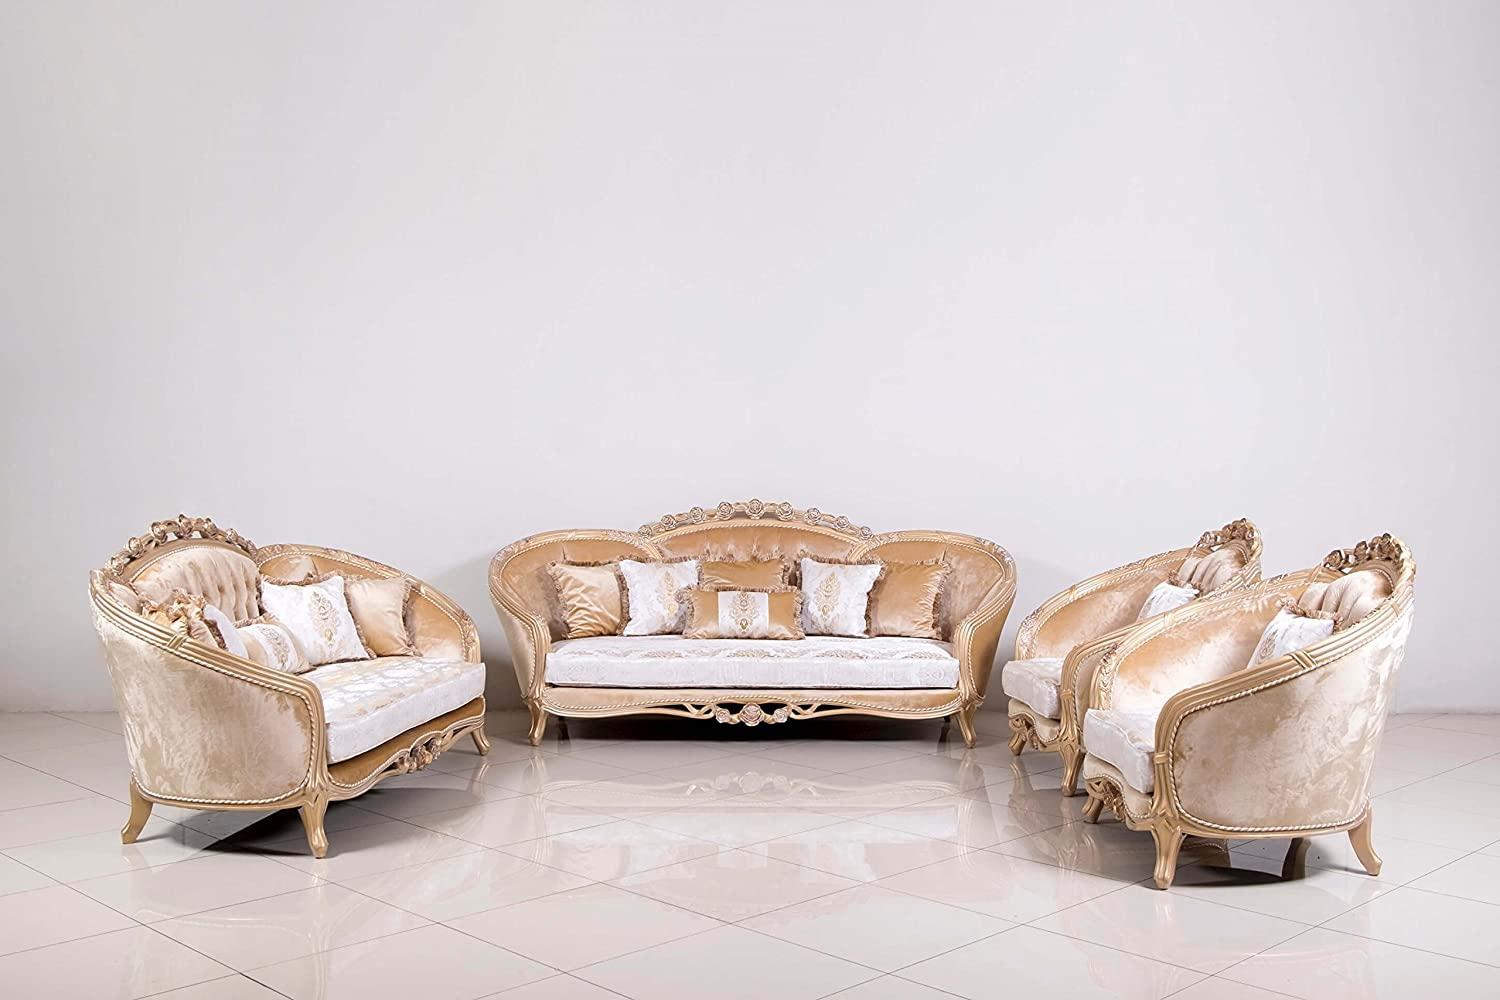 Classic  Traditional Champagne  Cooper  Off-White Wood  Solid Hardwood and Fabric Sofa Set EUROPEAN FURNITURE 45001-S-Set-4